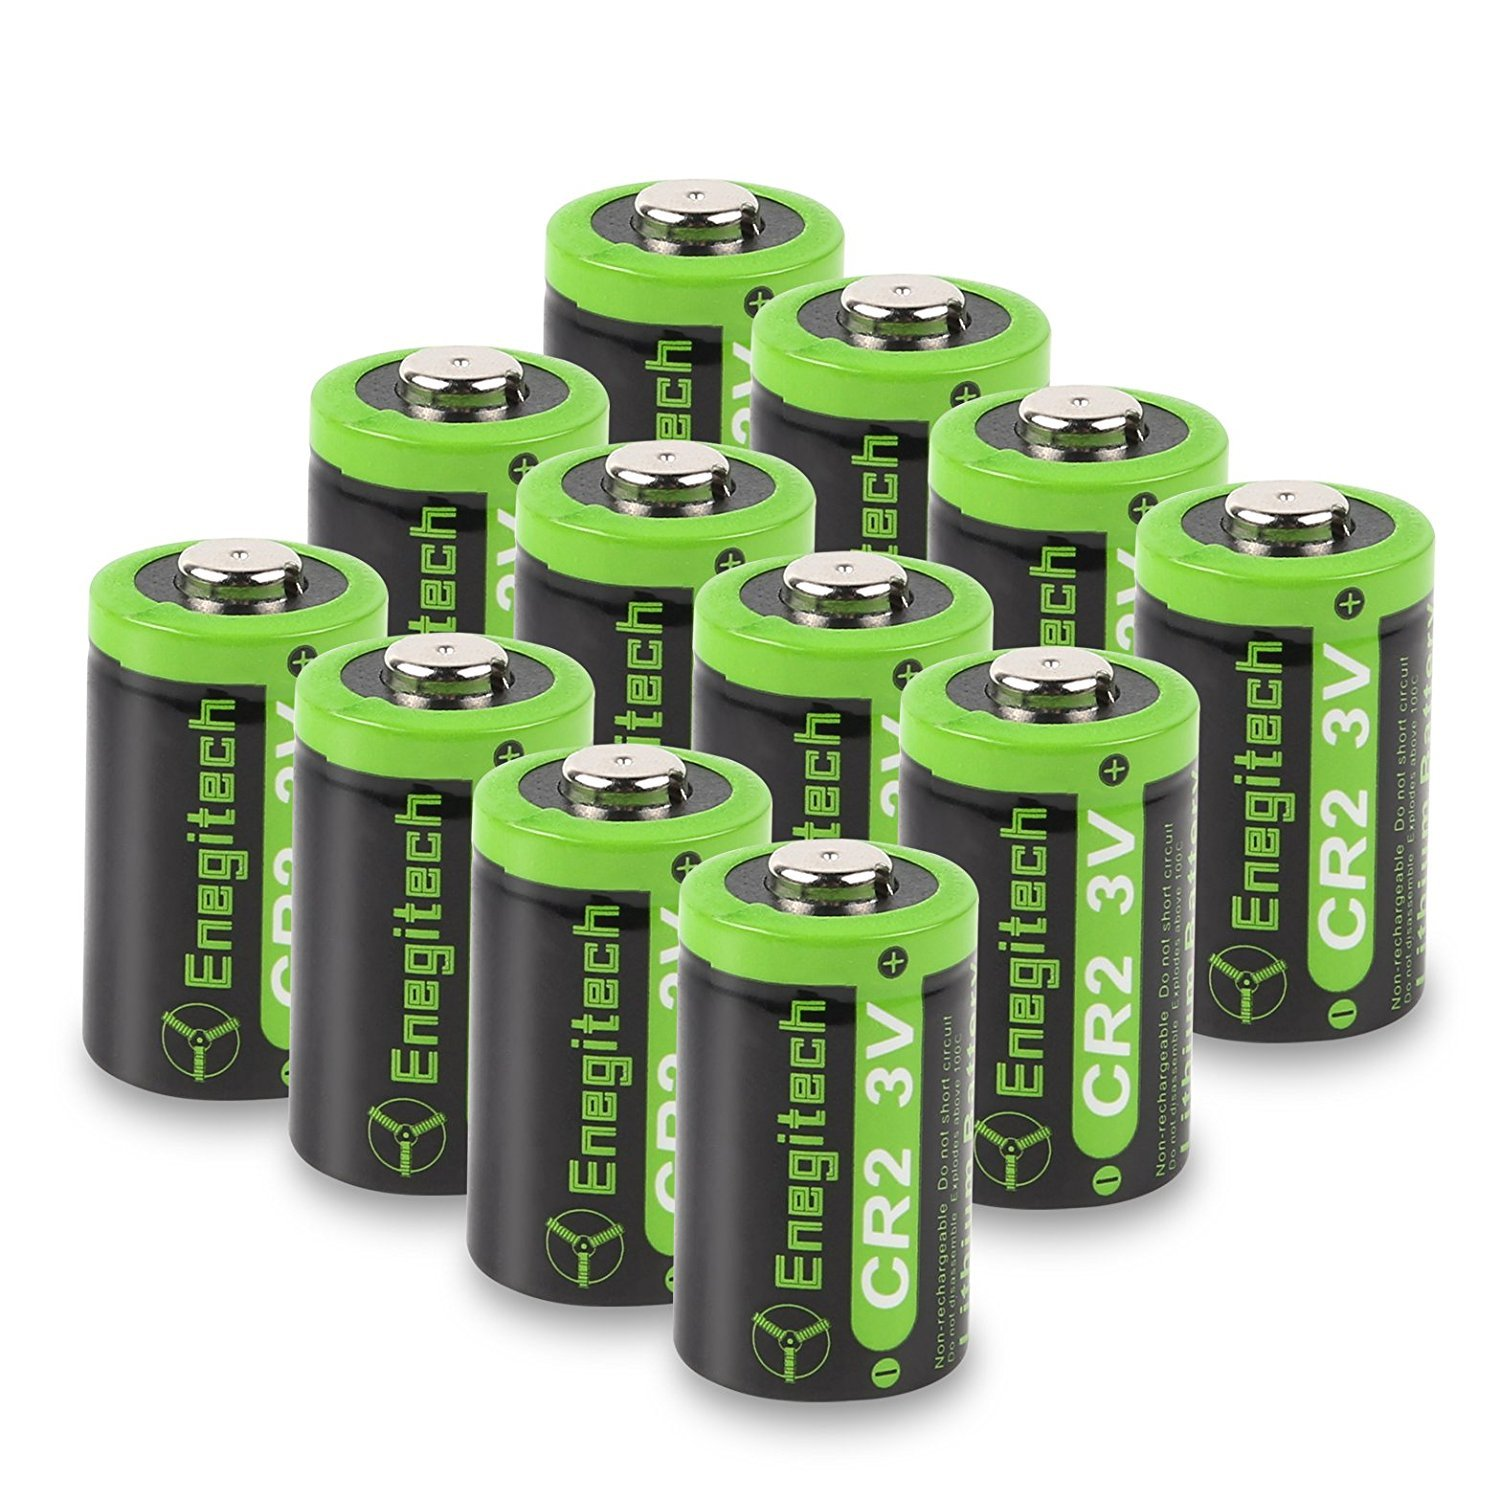 Enegitech 12 Pack CR2 3V 800mAh Lithium Photo Battery with PTC Protection DL-CR2 for Golf Rangefinder, Baby Monitor, Flashlight